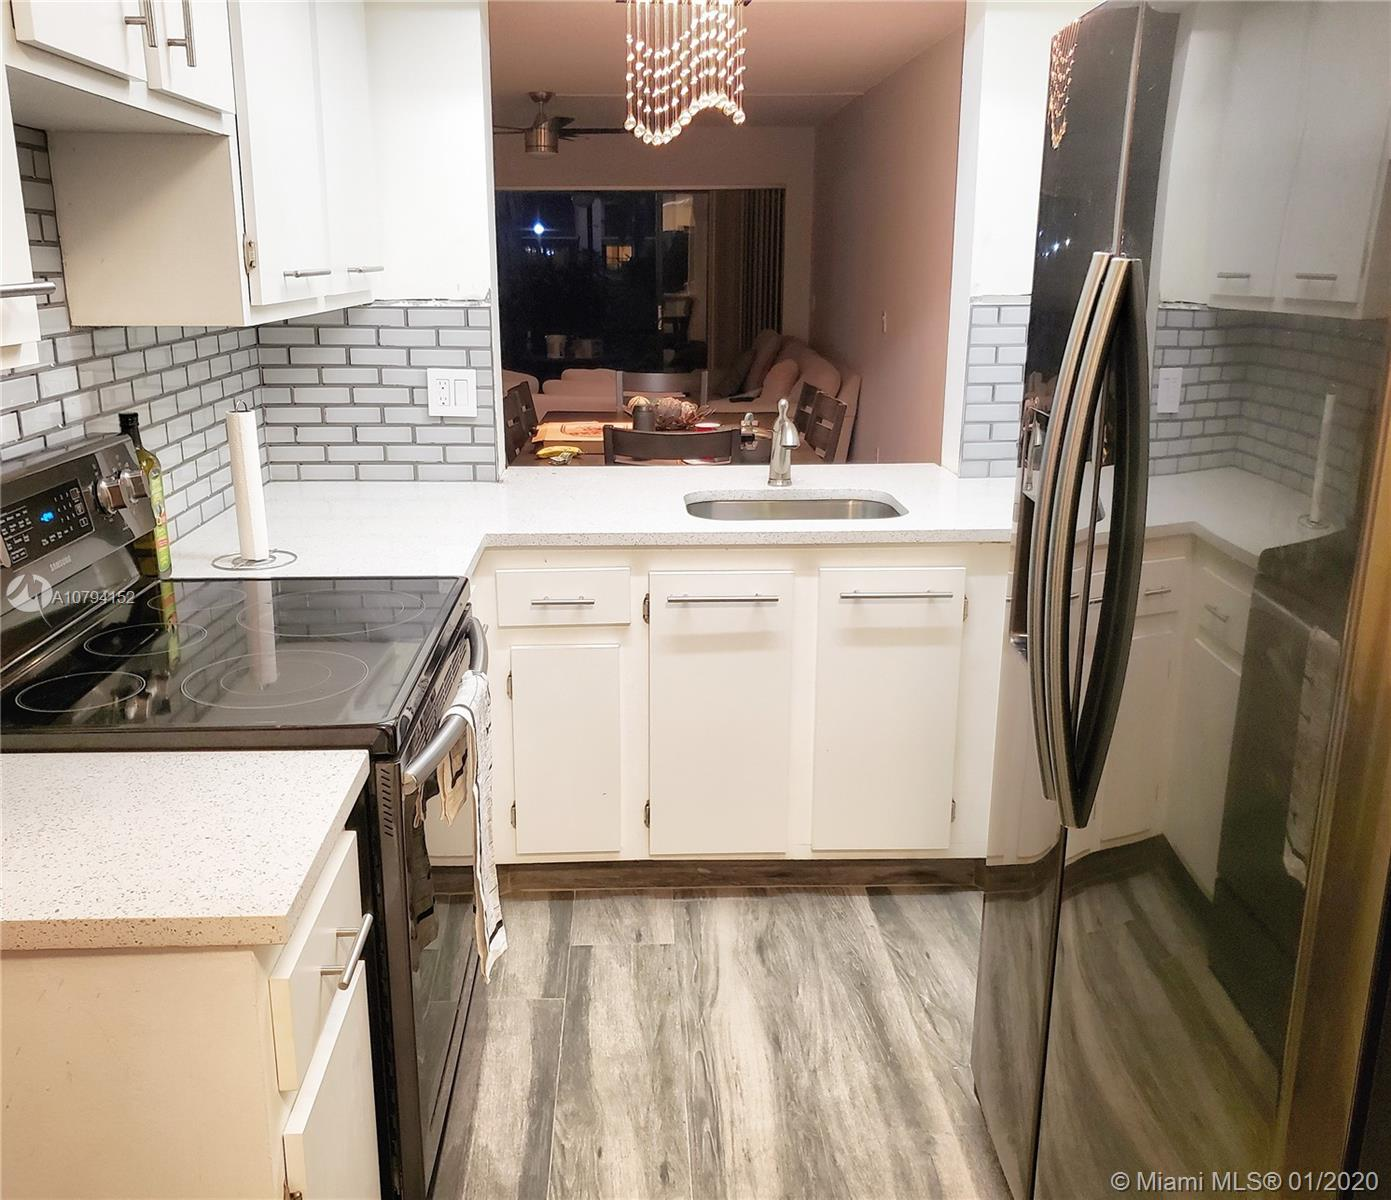 Spacious, renovated 2/2 condo, very conveniently located 3 min to I95, 5 min to Sawgrass Expressway and Turnpike.New tile floors throughout,  Stainless steel appliances, washer and dryer in unit, lots of storage space Great amenities, pool, hot tub, BBQ grills etc. Water, sewer, basic cable included on Hoa fee. Association requires 675+ credit score. No pets, no motorcycle, no trucks allowed